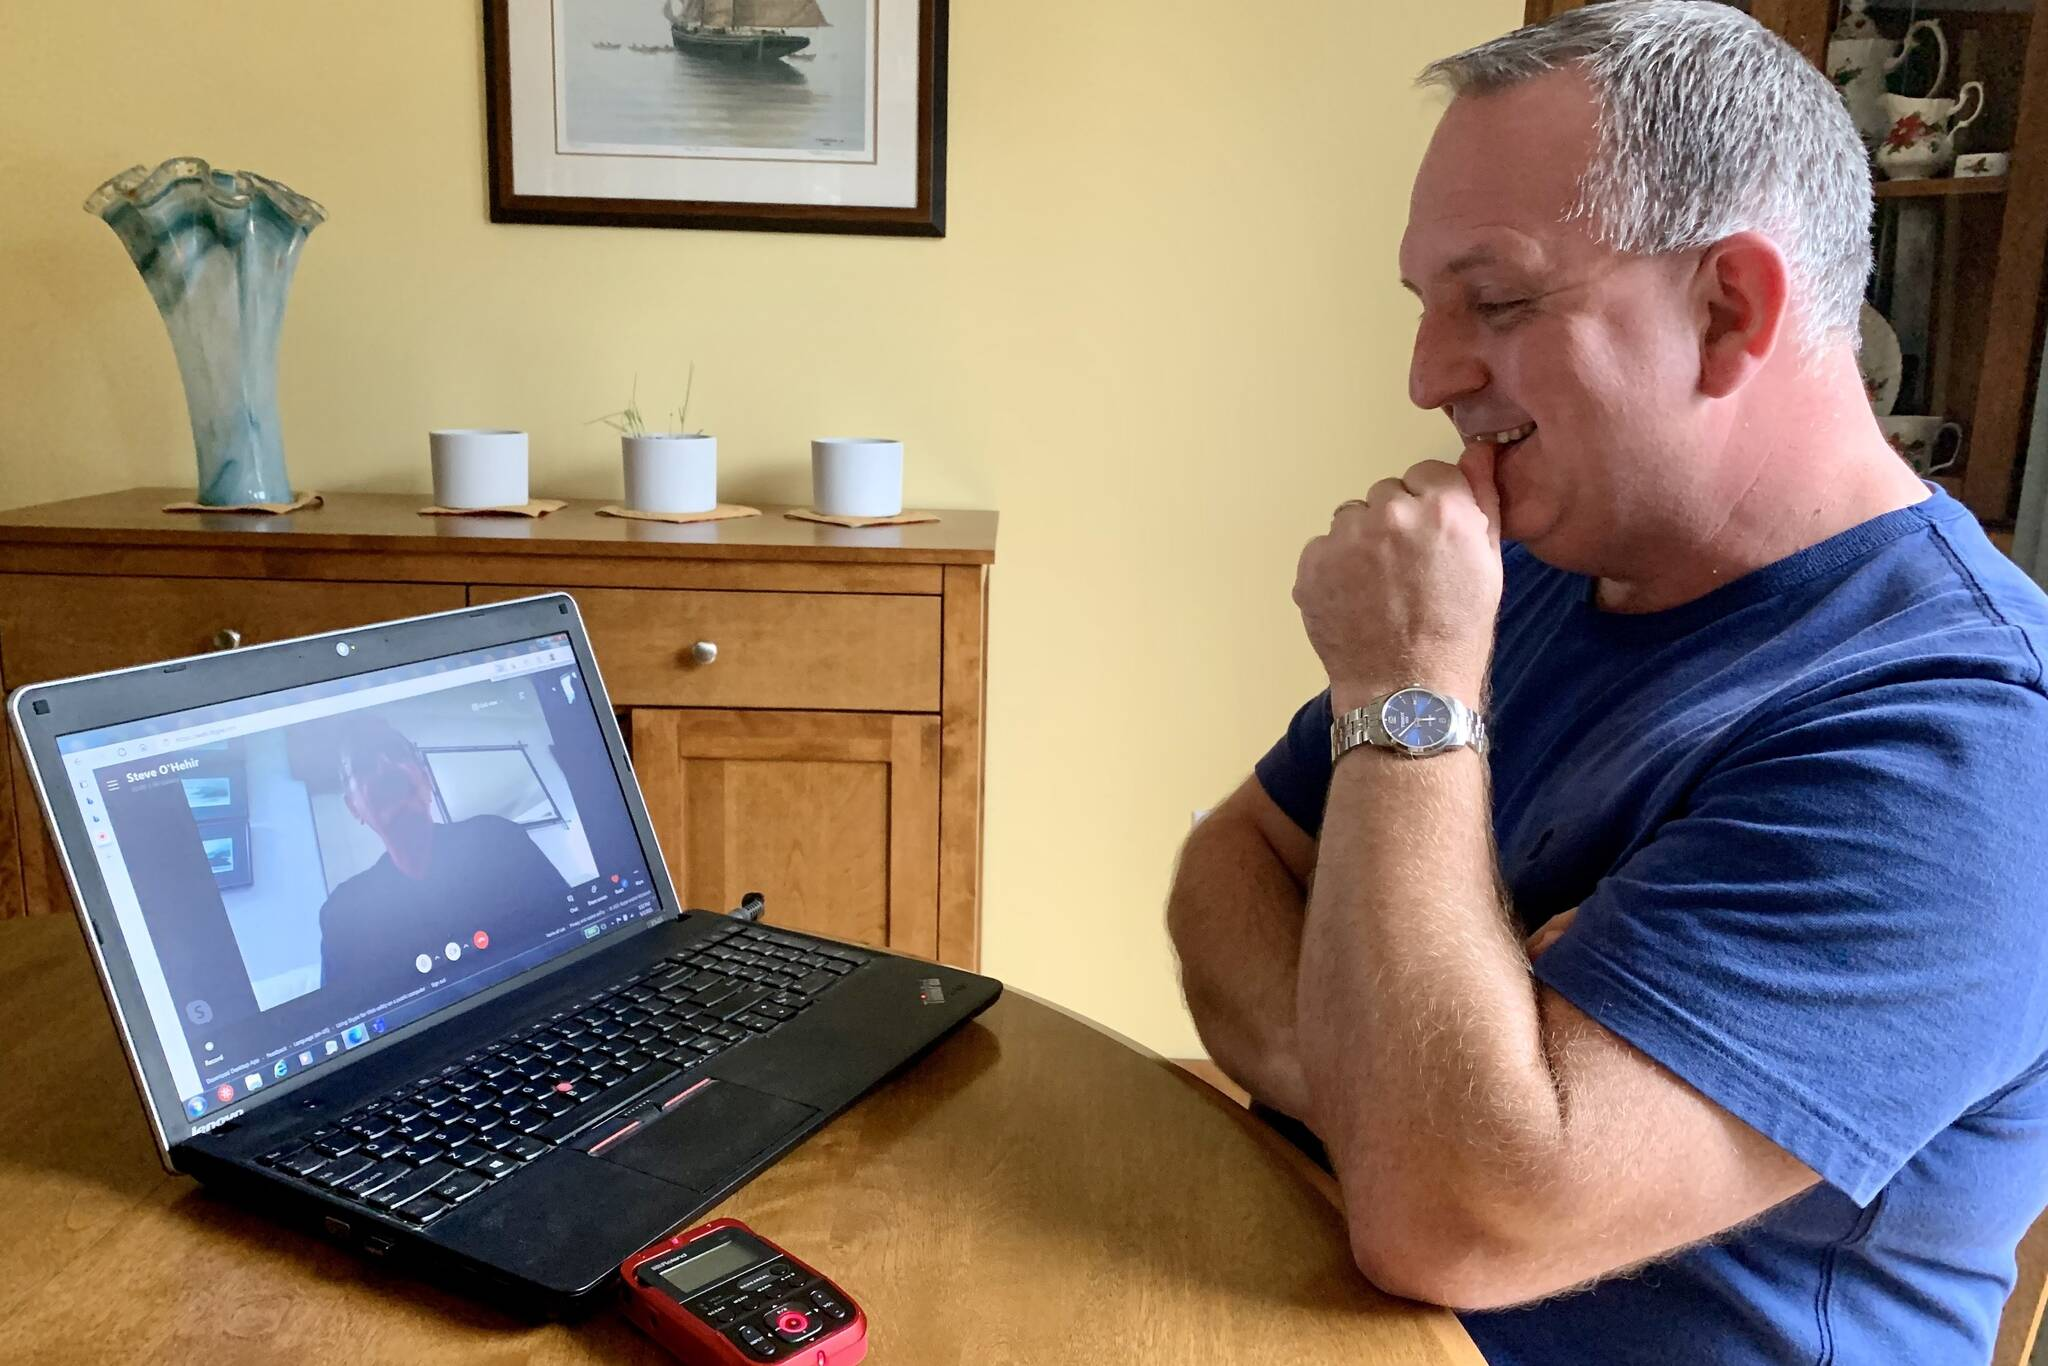 Steven Badcock chuckles at his friend in England, Steve O'Hehir, with whom he chats each week via video, in Gambo, N.L., on Friday, Sept. 3, 2021. The two met when O'Hehir's plane to Cincinnati was rerouted to Gander, N.L., on Sept. 11, 2001, and they've been close friends ever since. THE CANADIAN PRESS/Sarah Smellie